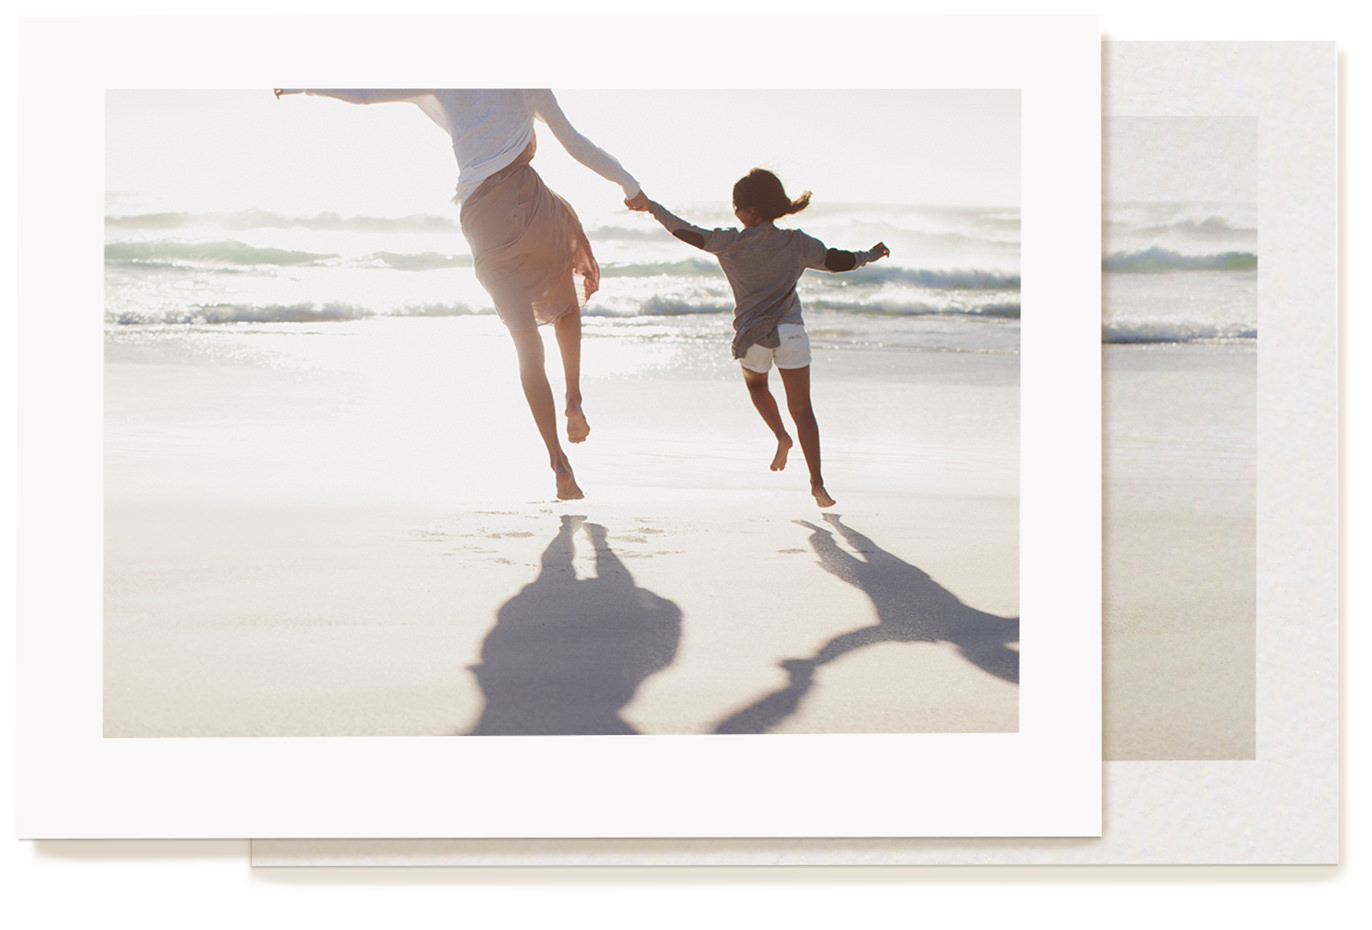 Image of printed photo on MILK Photo Lustre paper. Photo is of woman and girl running on beach hand in hand